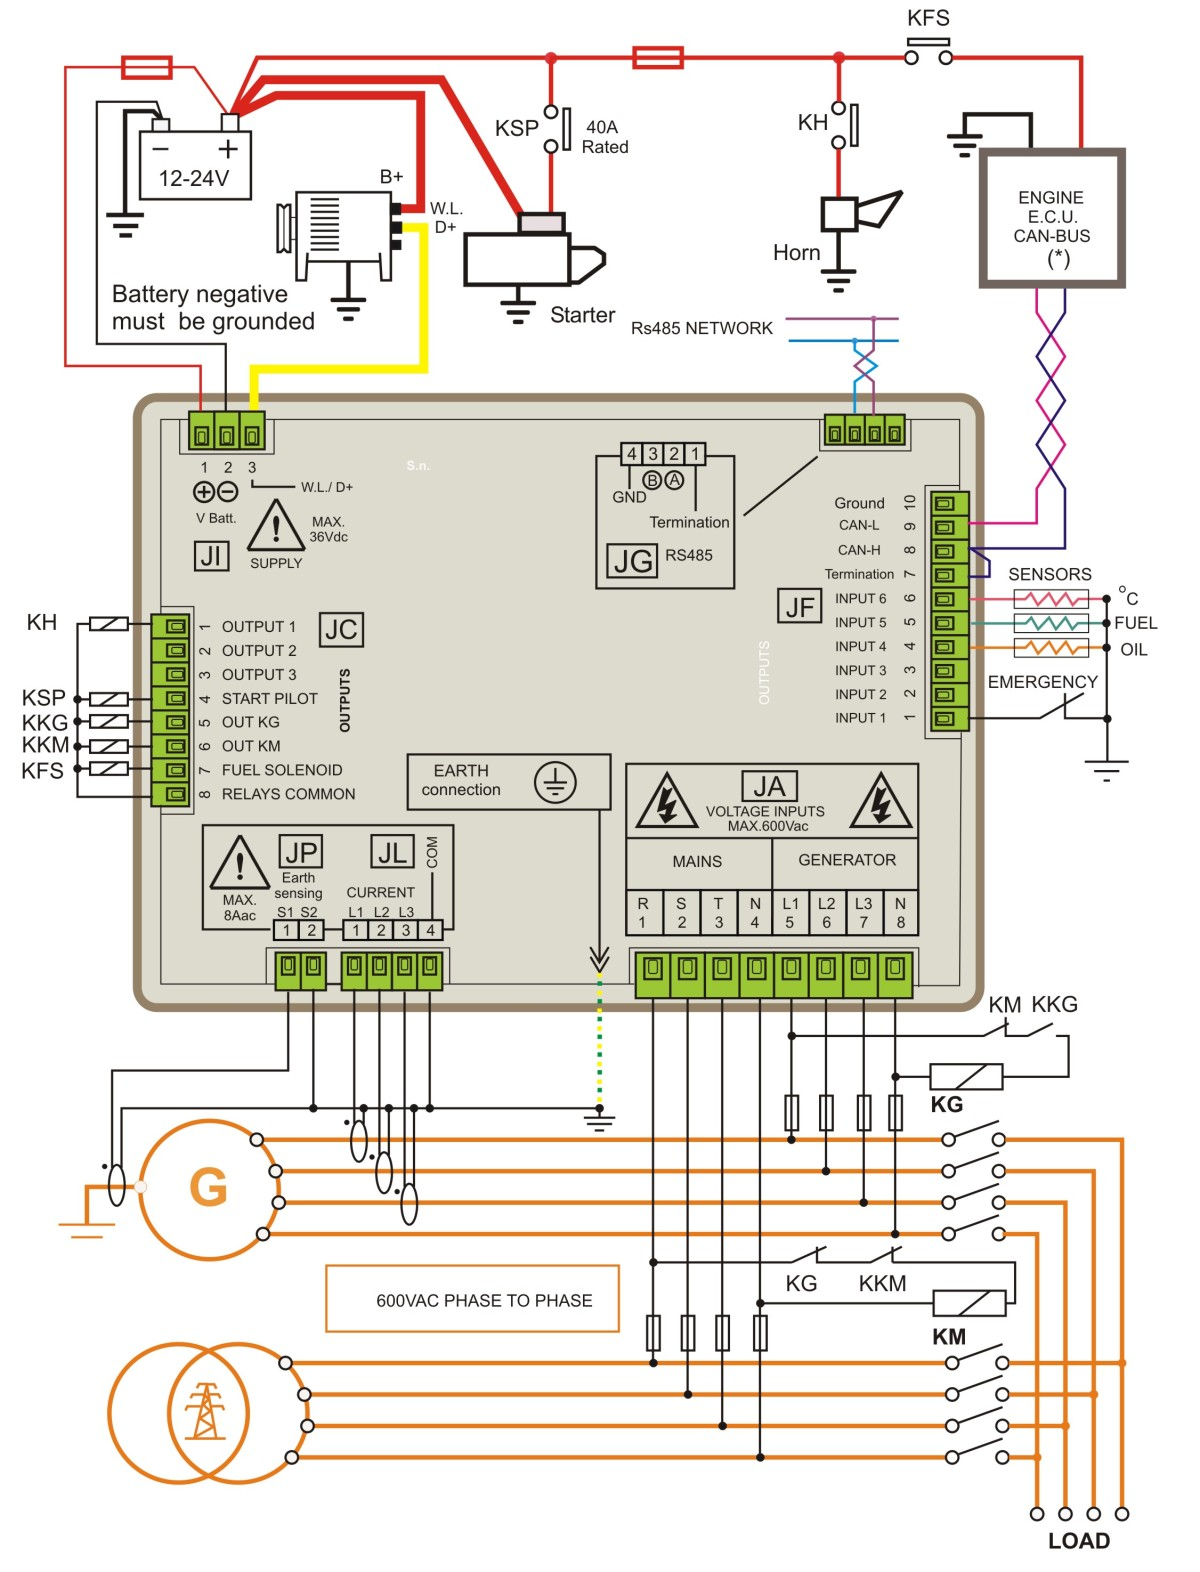 hight resolution of kubota generator wiring diagram my wiring diagram kubota generator wiring